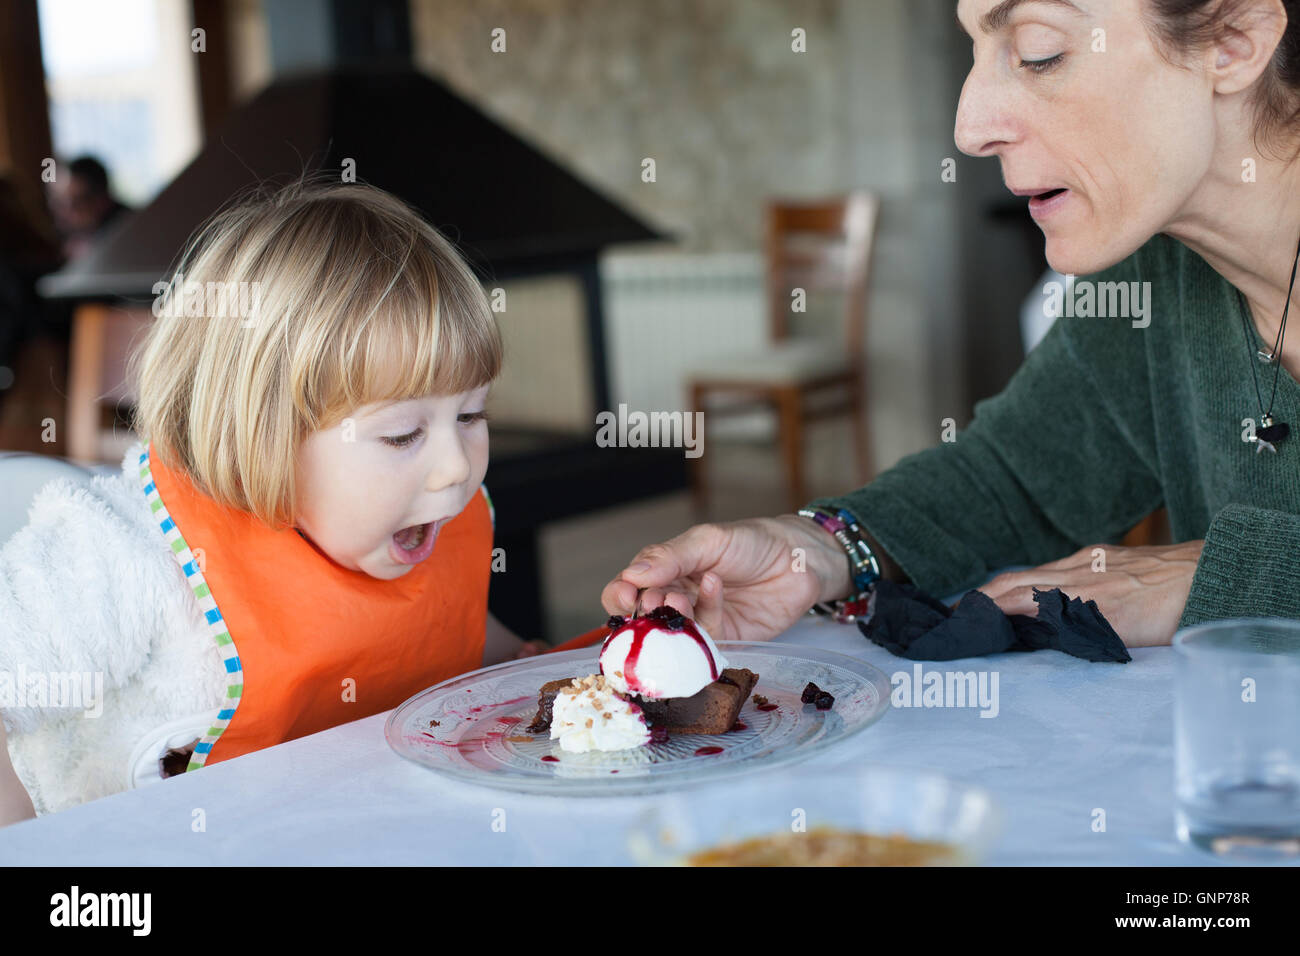 two years old child with orange bib funny surprised open mouth face expression eating with woman a piece of chocolate - Stock Image